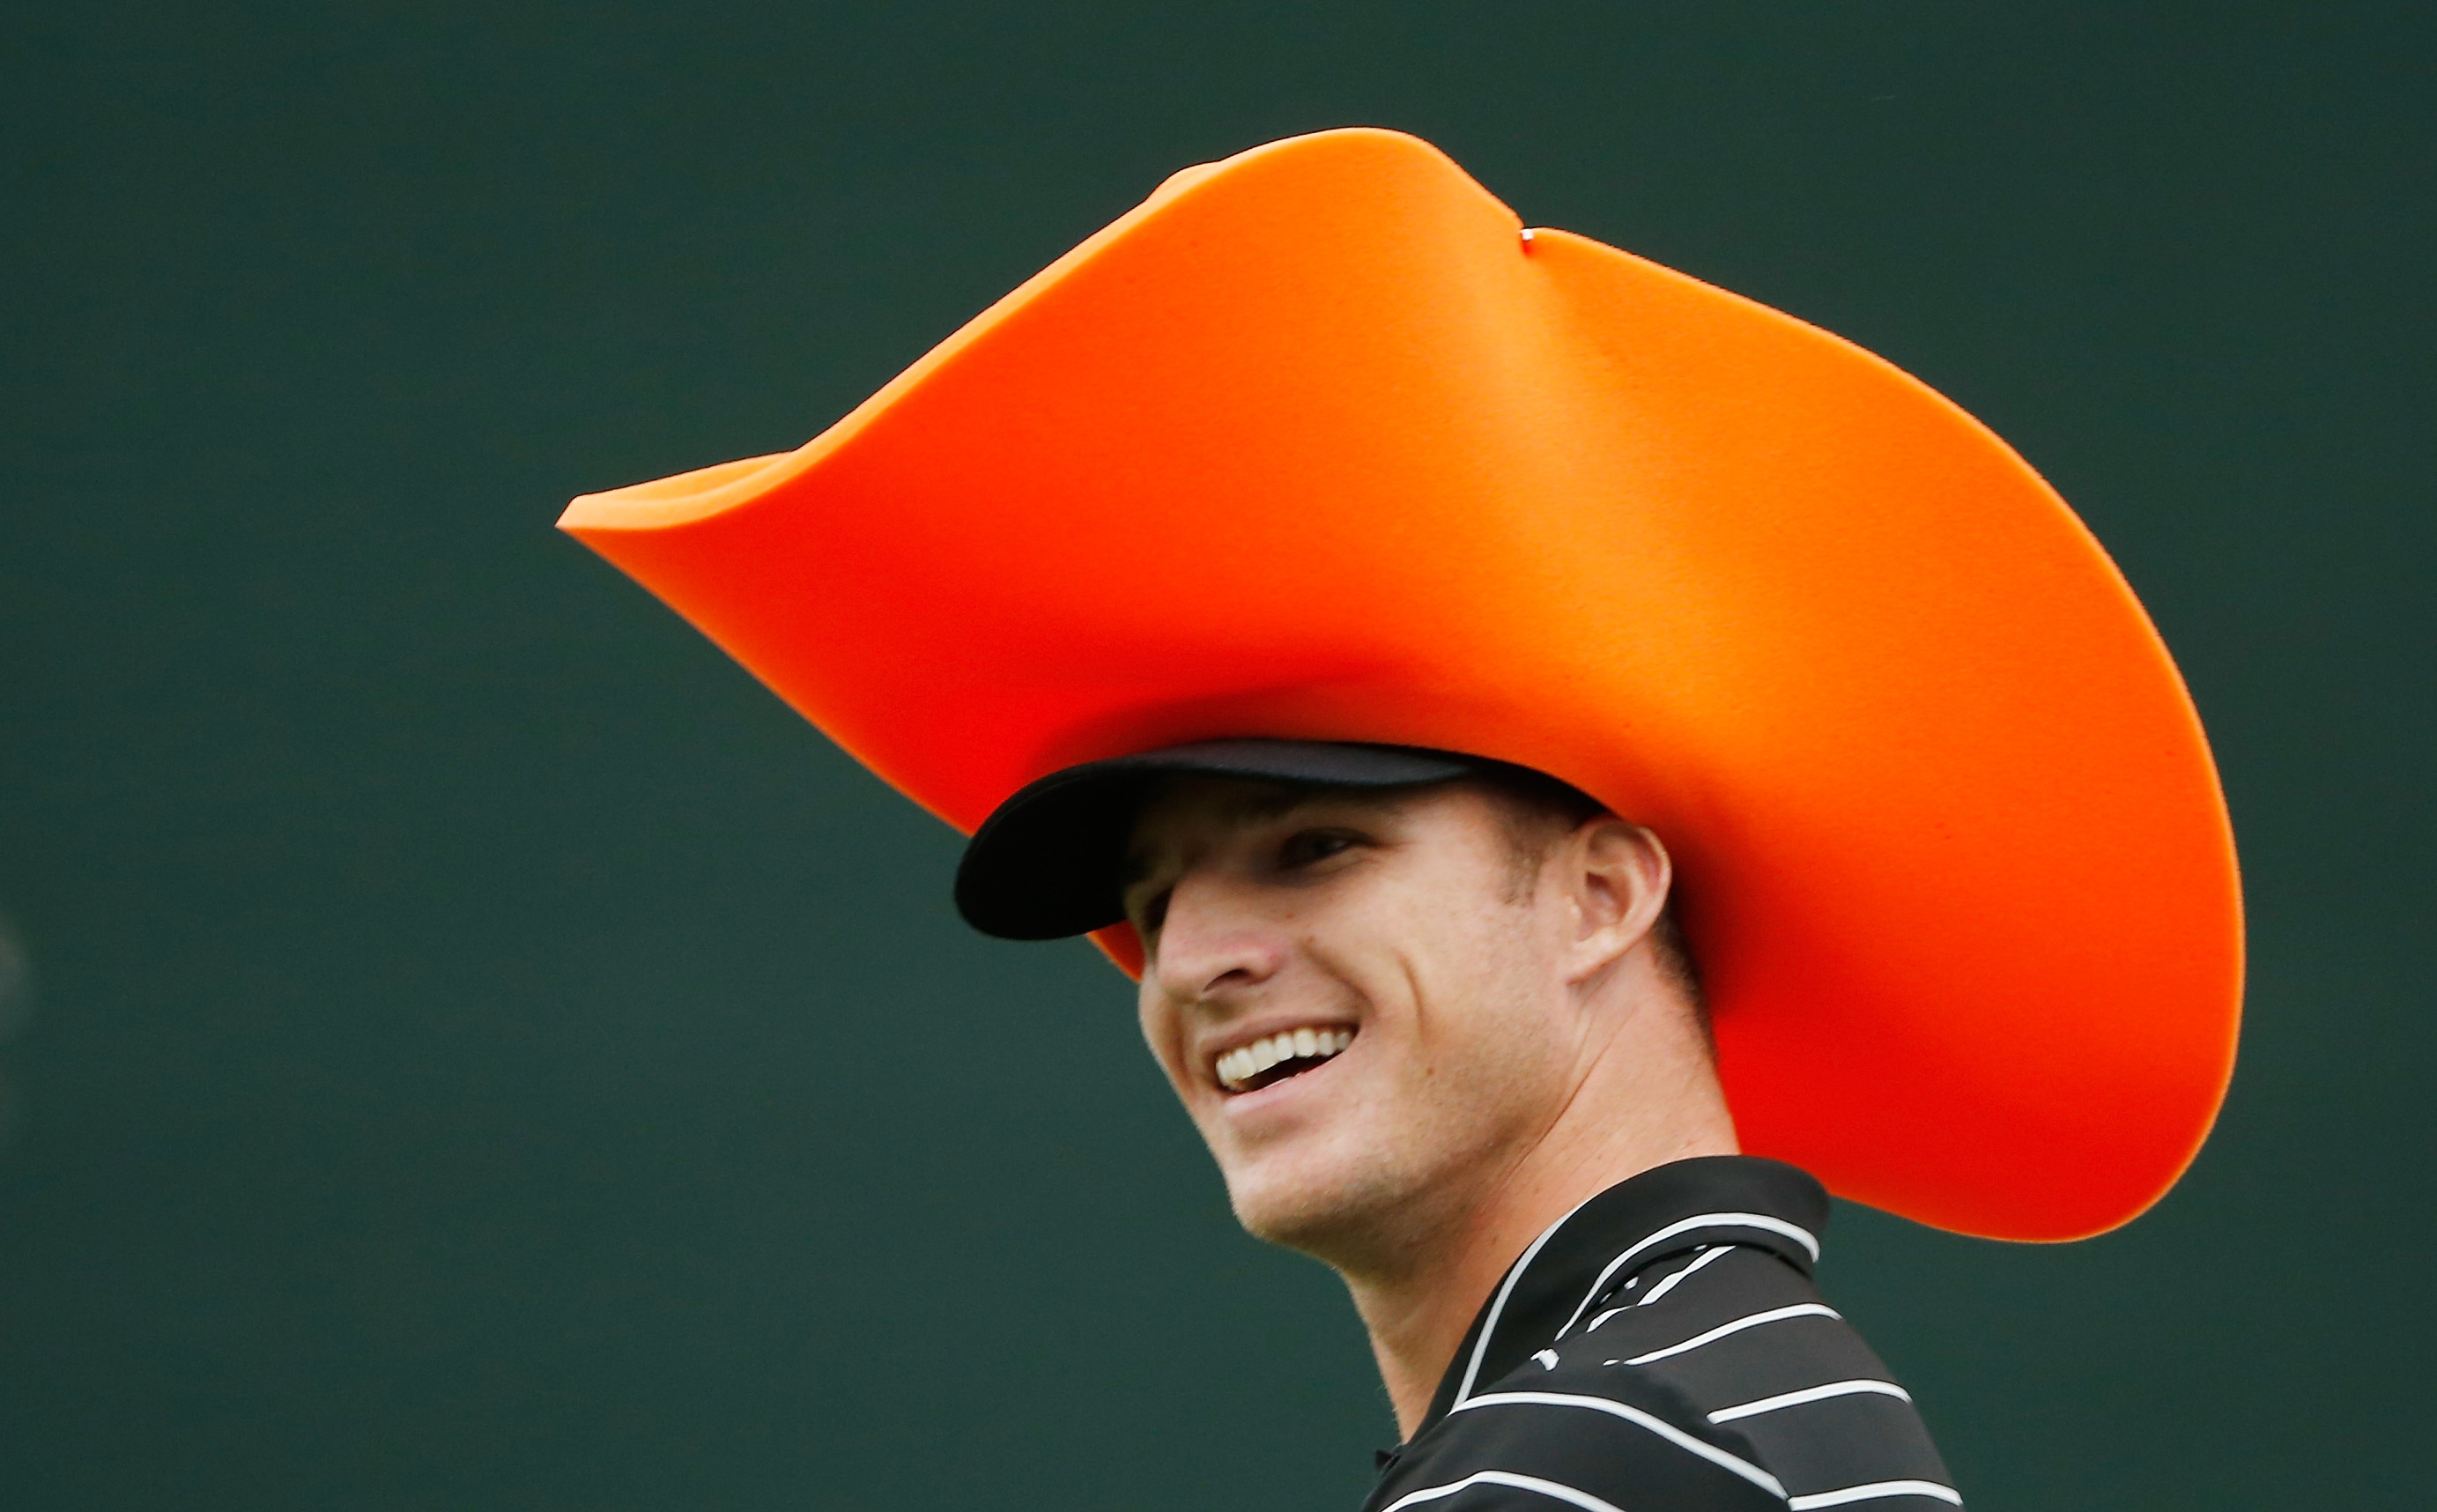 Morgan Hoffman wears a novelty hat at the Waste Management Phoenix Open (Photo: Getty Images)